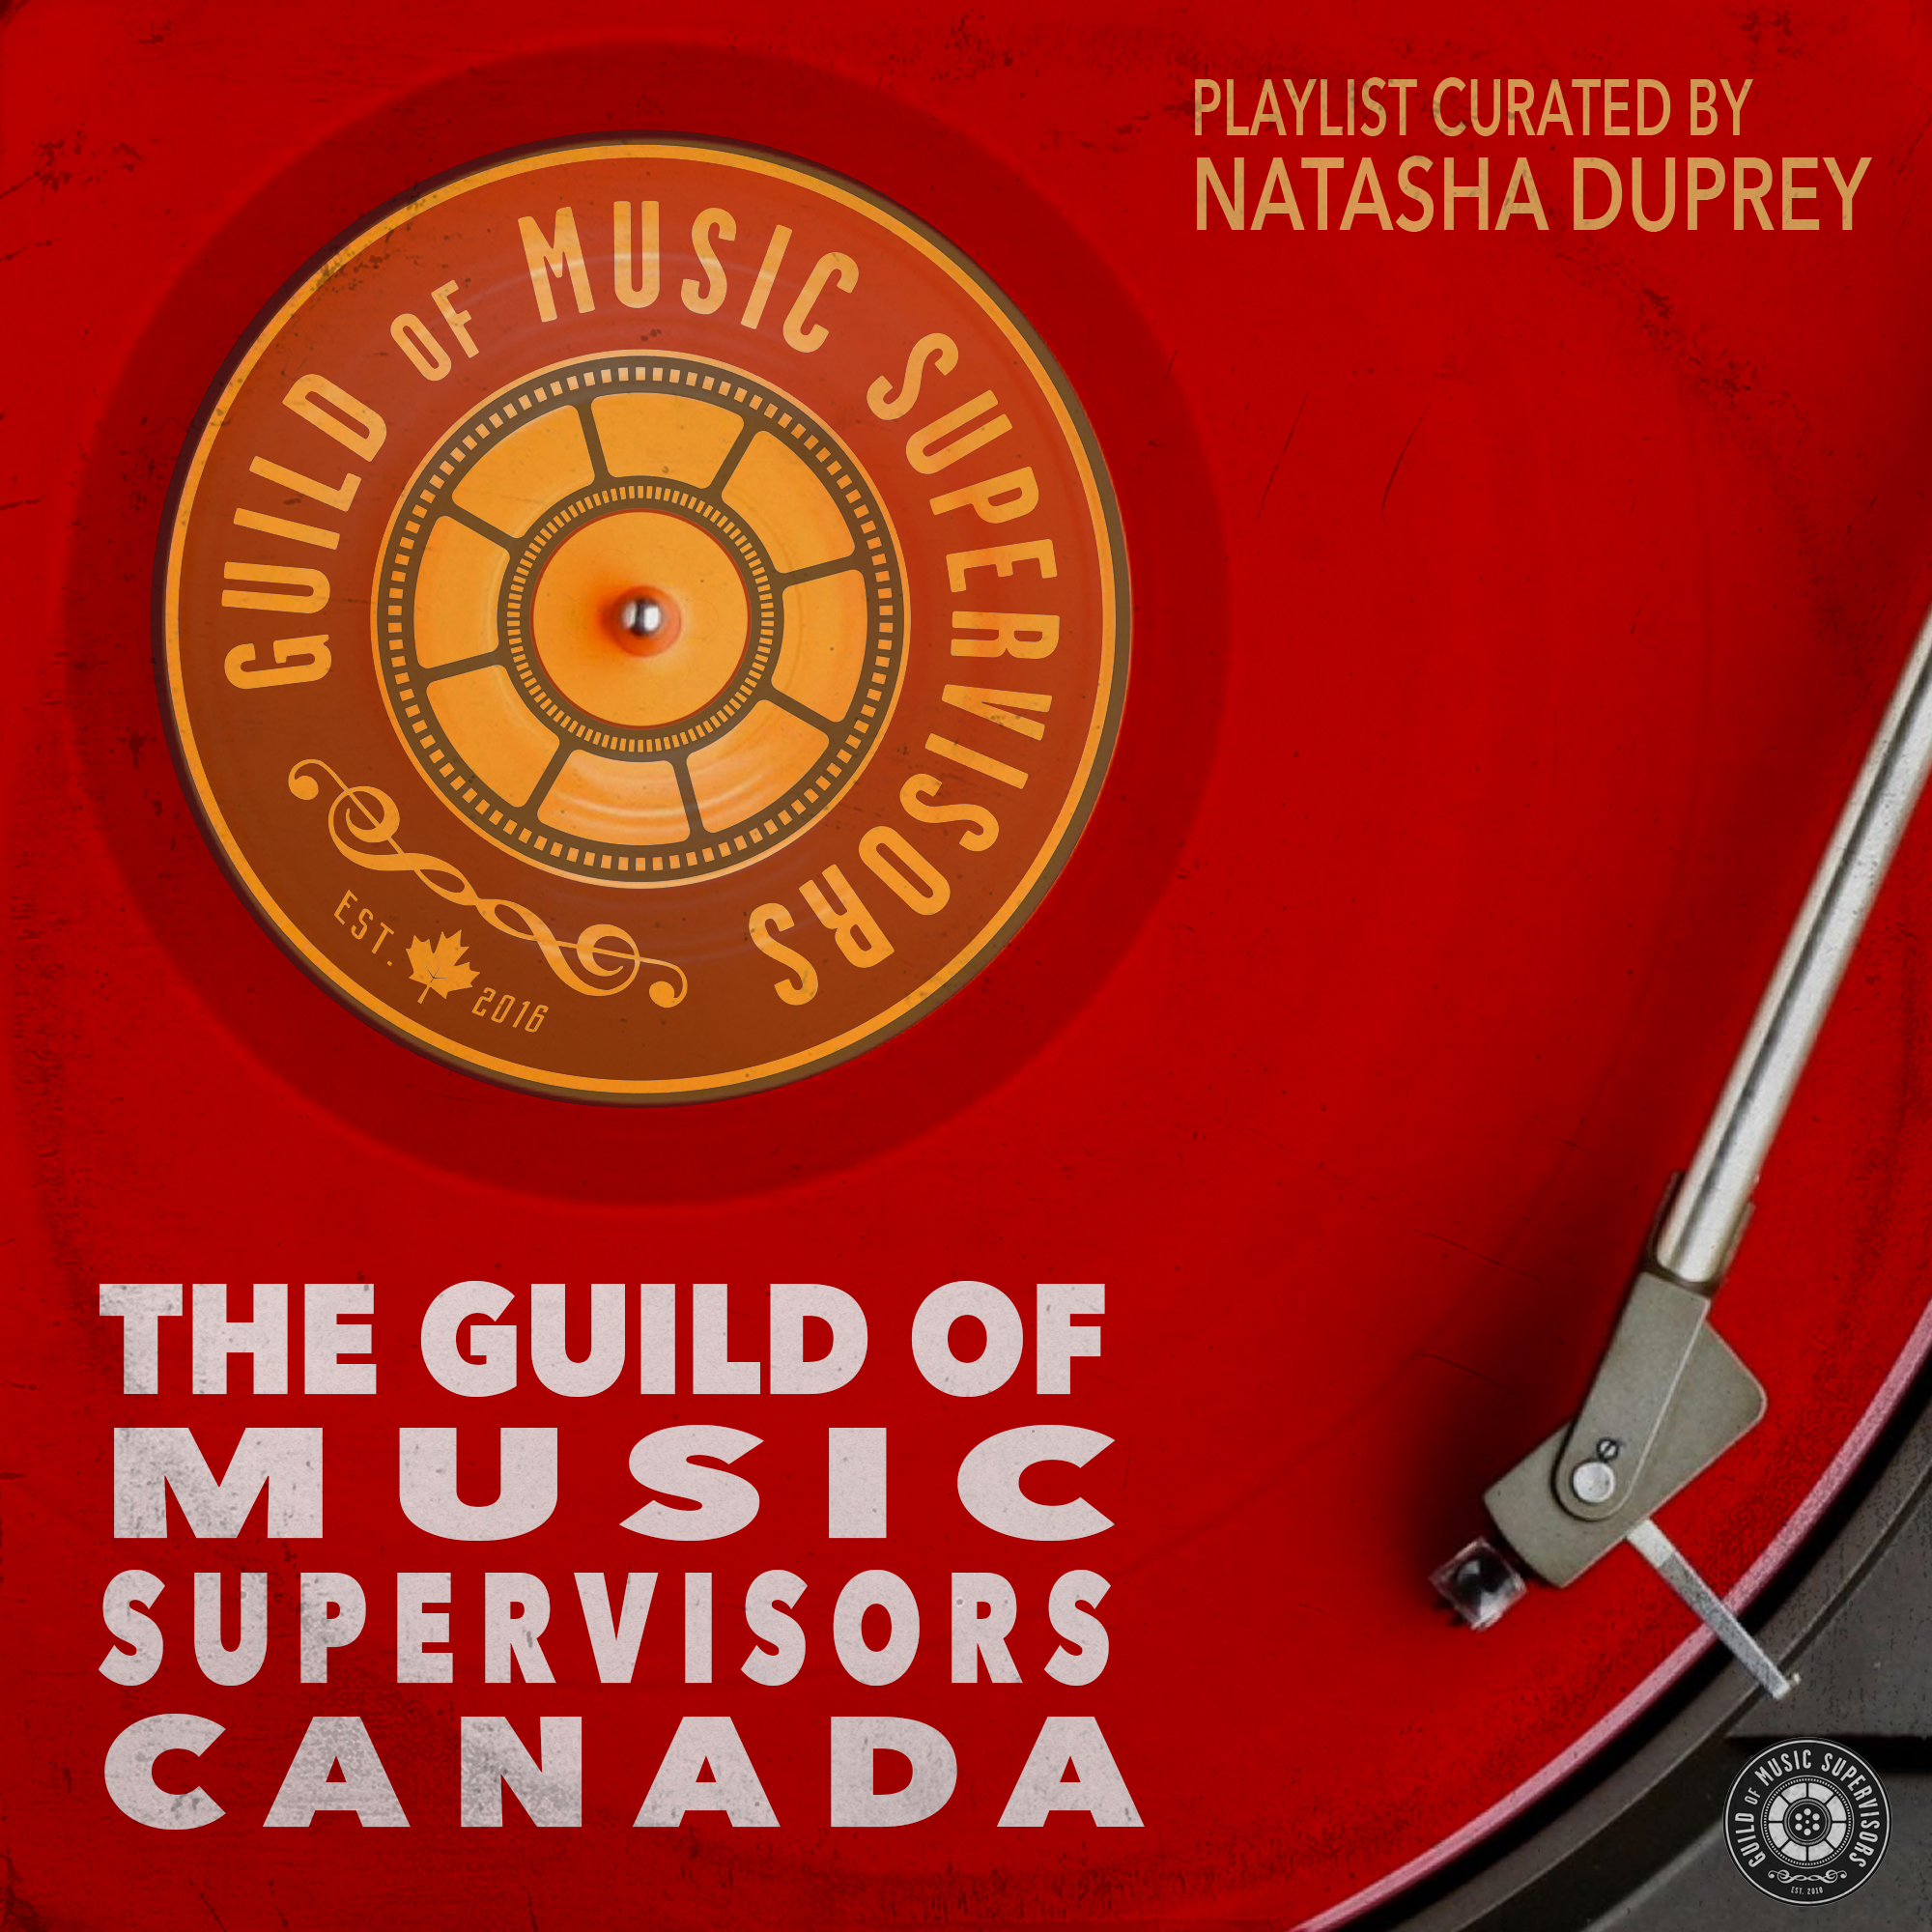 GUILD-Curated-Playlist-Cover-NATASHA.jpg